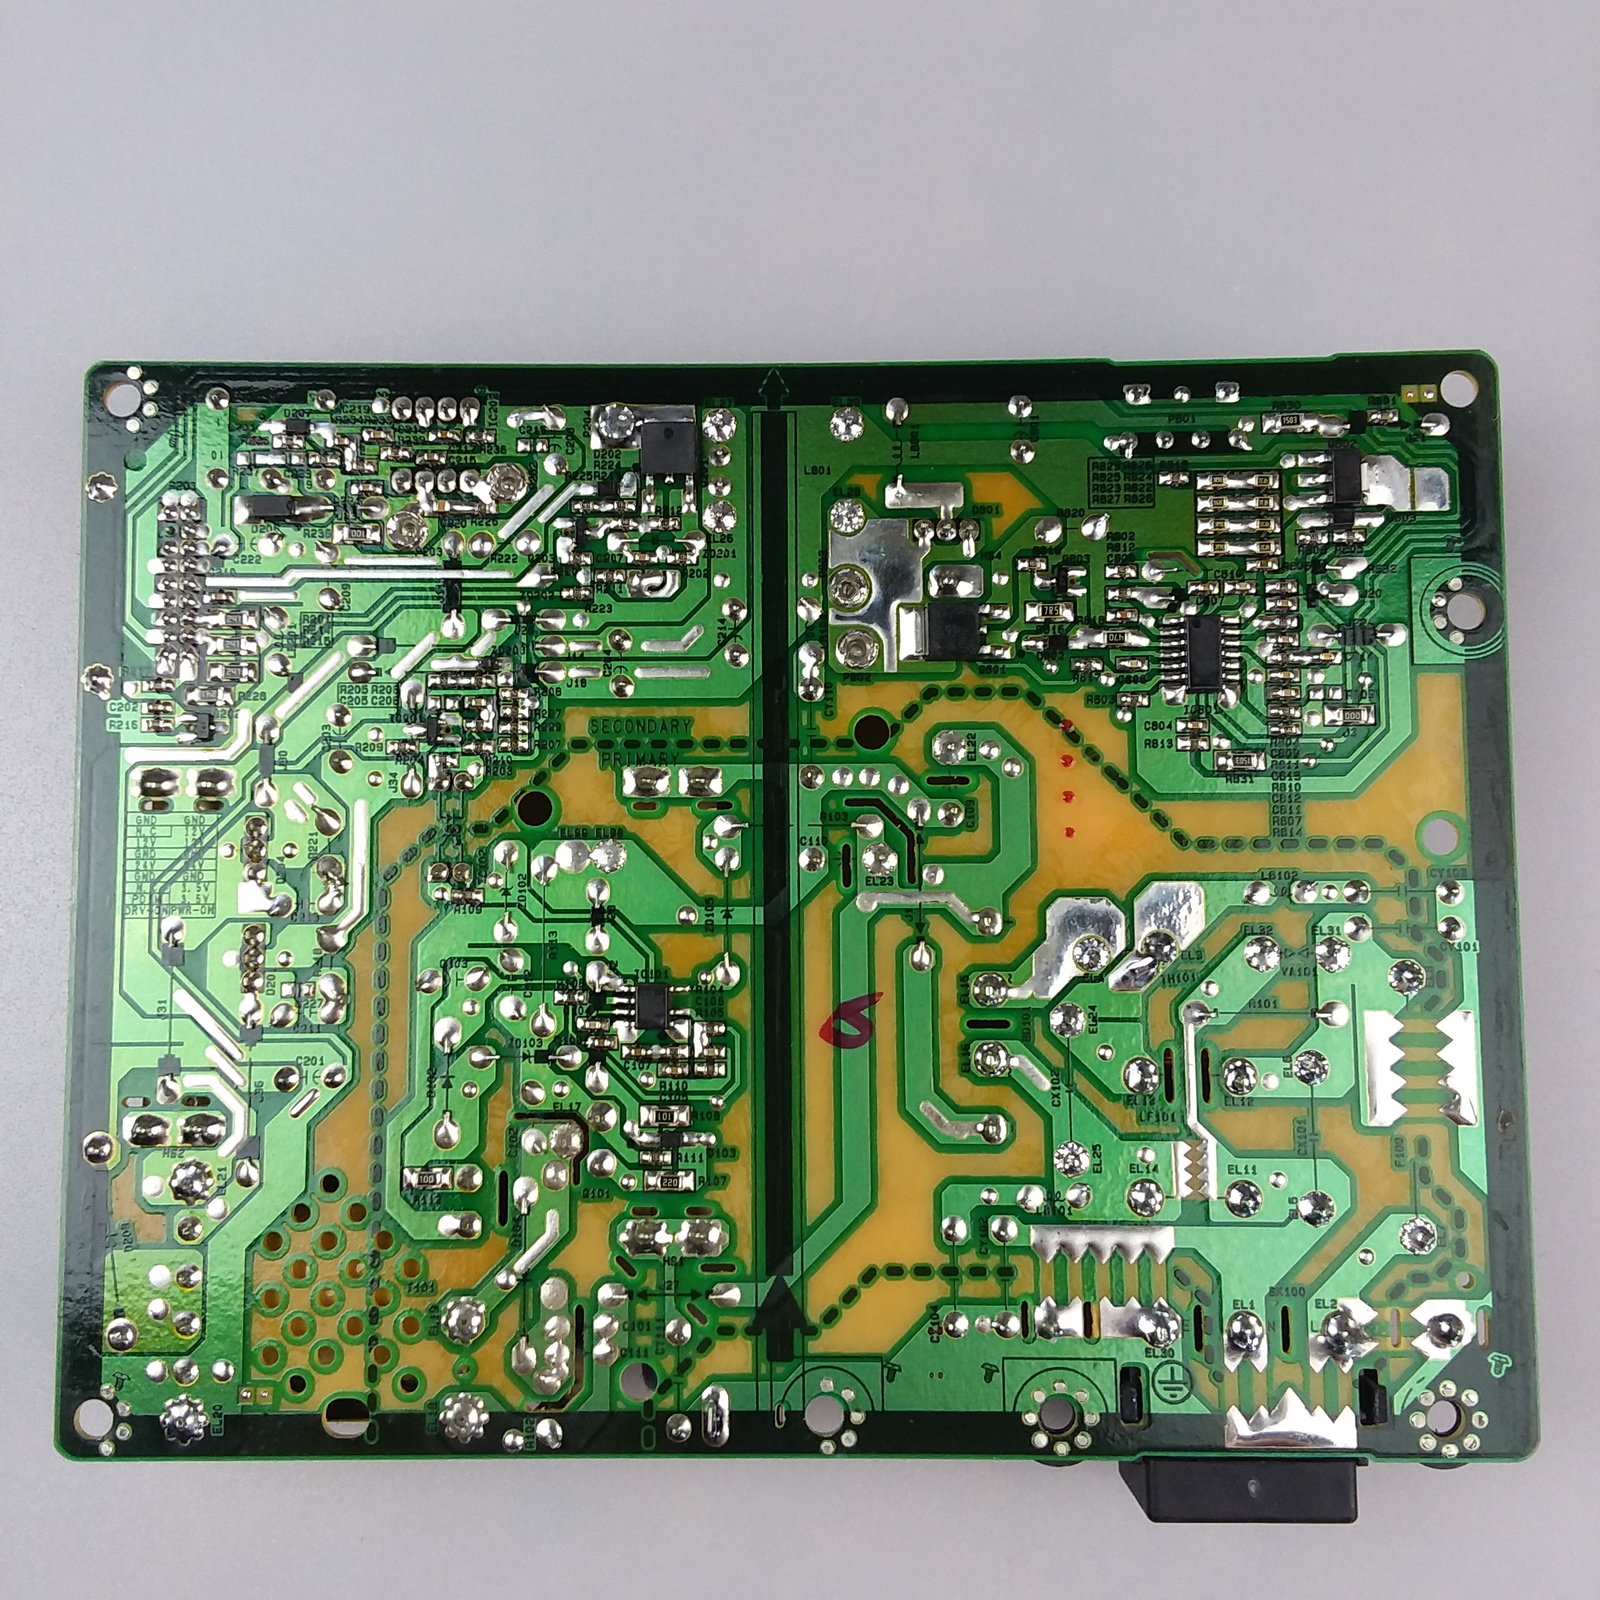 LG 32LN575V EAX64905001 (2.4) (2.7) Power Supply Board image 3